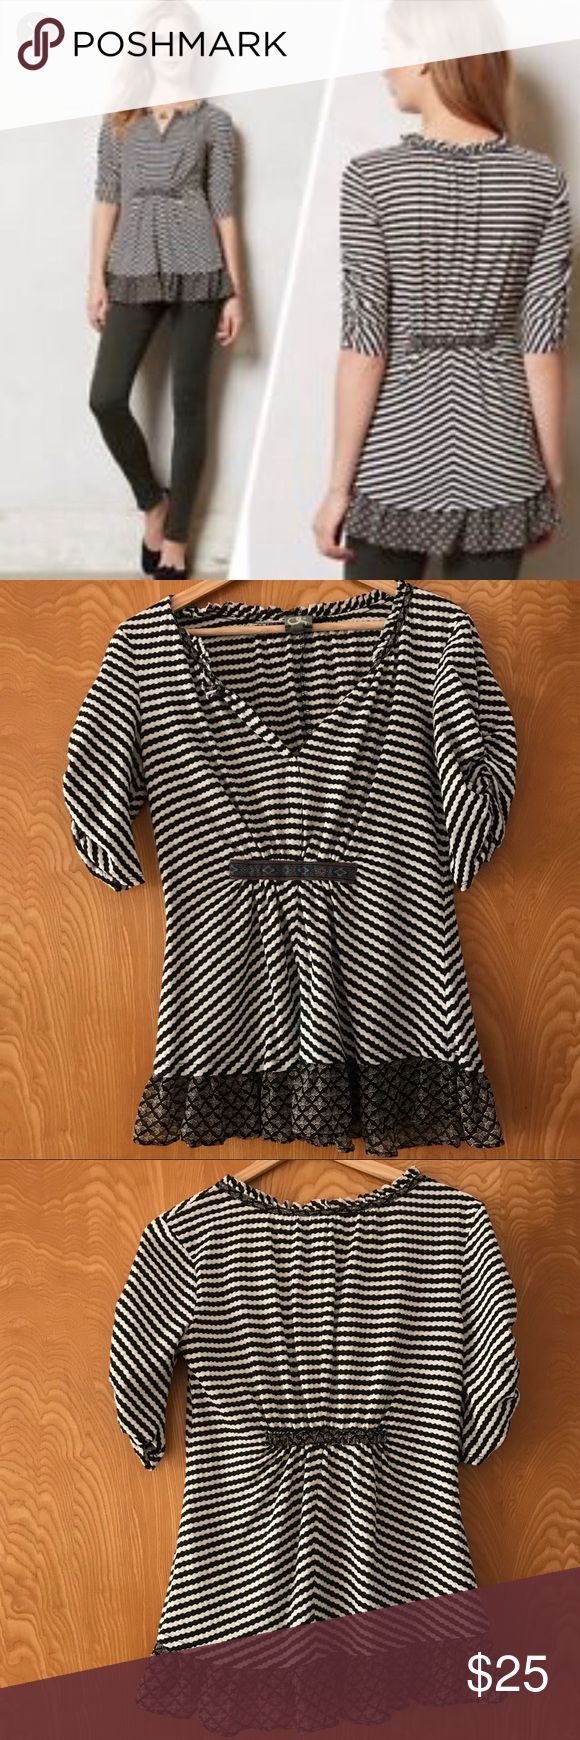 Anthropologie One September Black & White Blouse Anthropologie One September Black and White Striped Short Sleeve Top withRuffled Hem. Size small. Gathered waist. EUC. Comes from non-smoking home with no pets. Anthropologie Tops Blouses